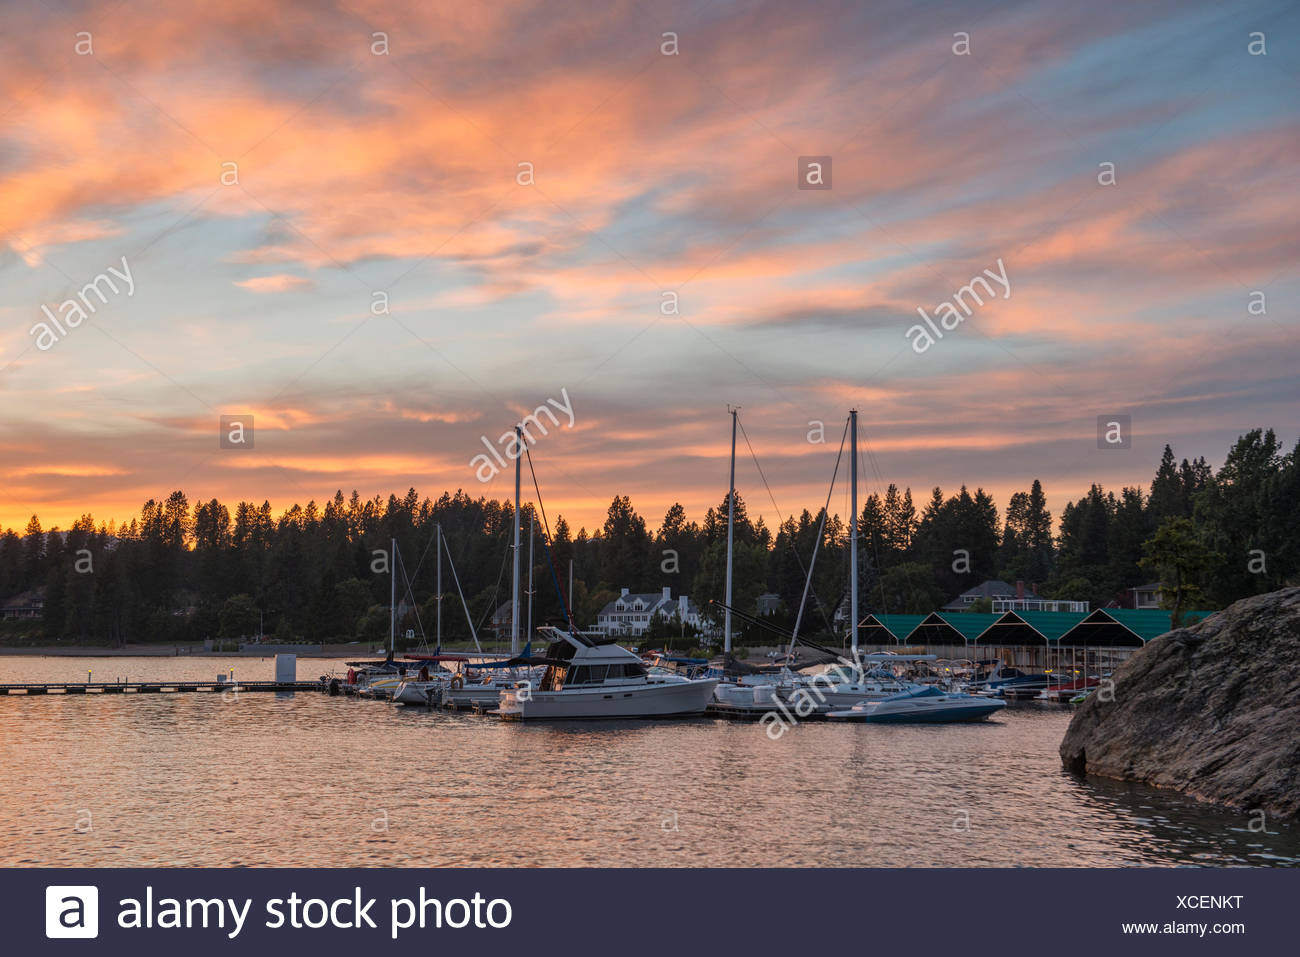 USA, United States, America, Idaho, Coeur d'Alene, shore, Rockies, rocky mountains, yacht, house, harbour, dock, sunset, boats, - Stock Image